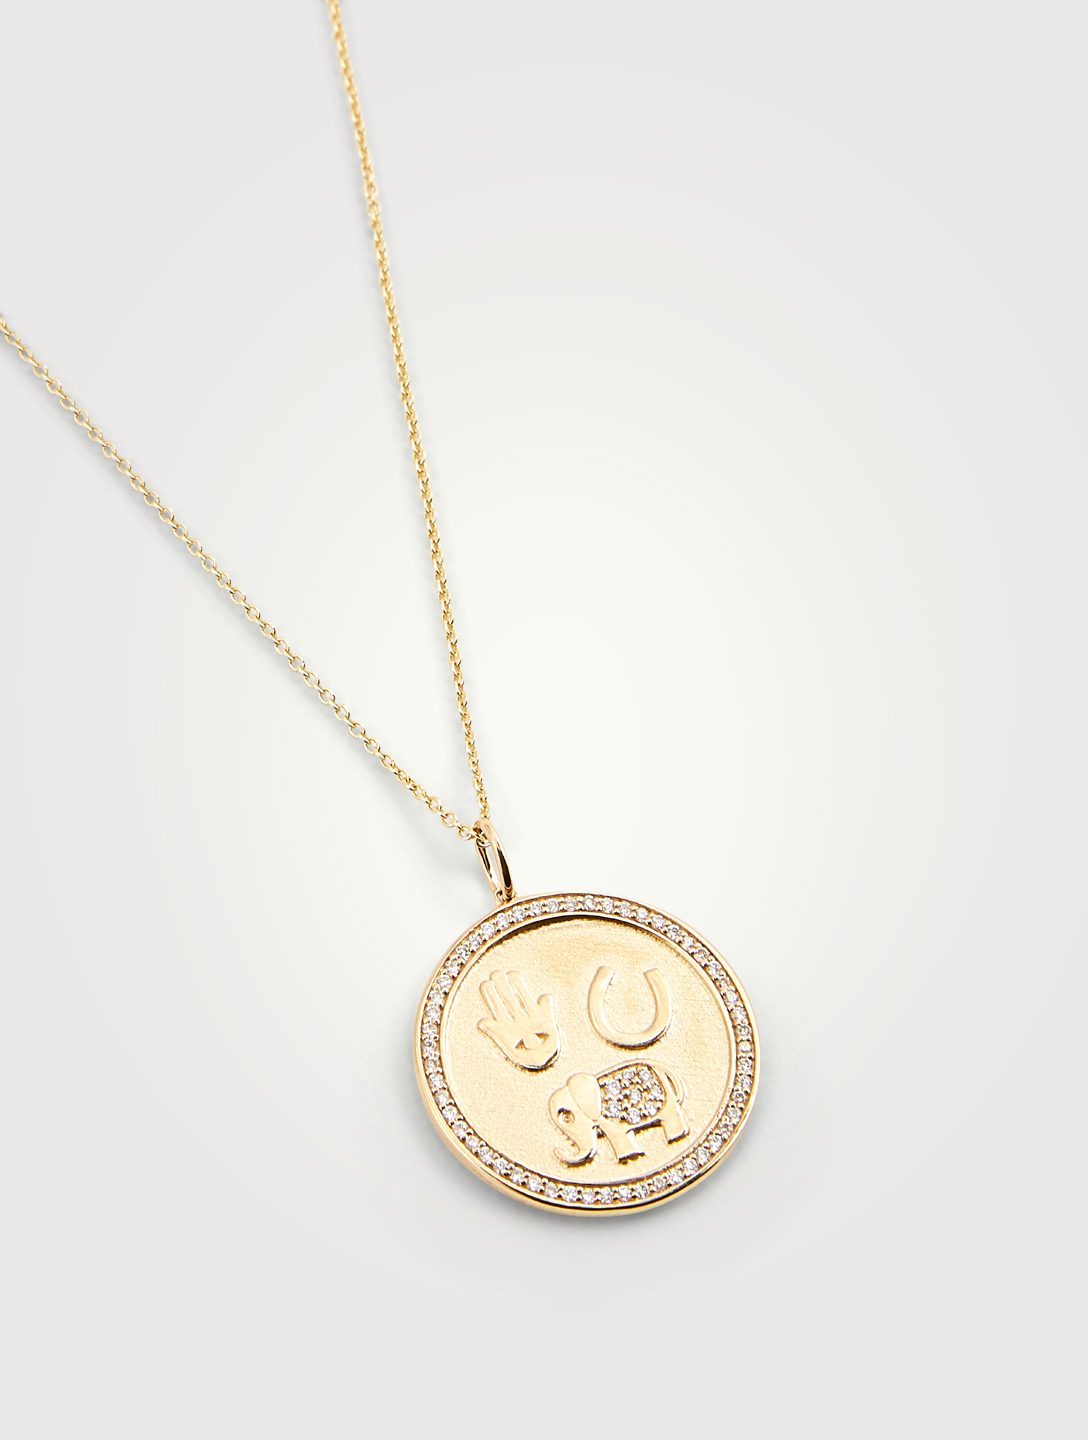 SYDNEY EVAN 14K Gold Coin Necklace With Diamonds Women's Metallic